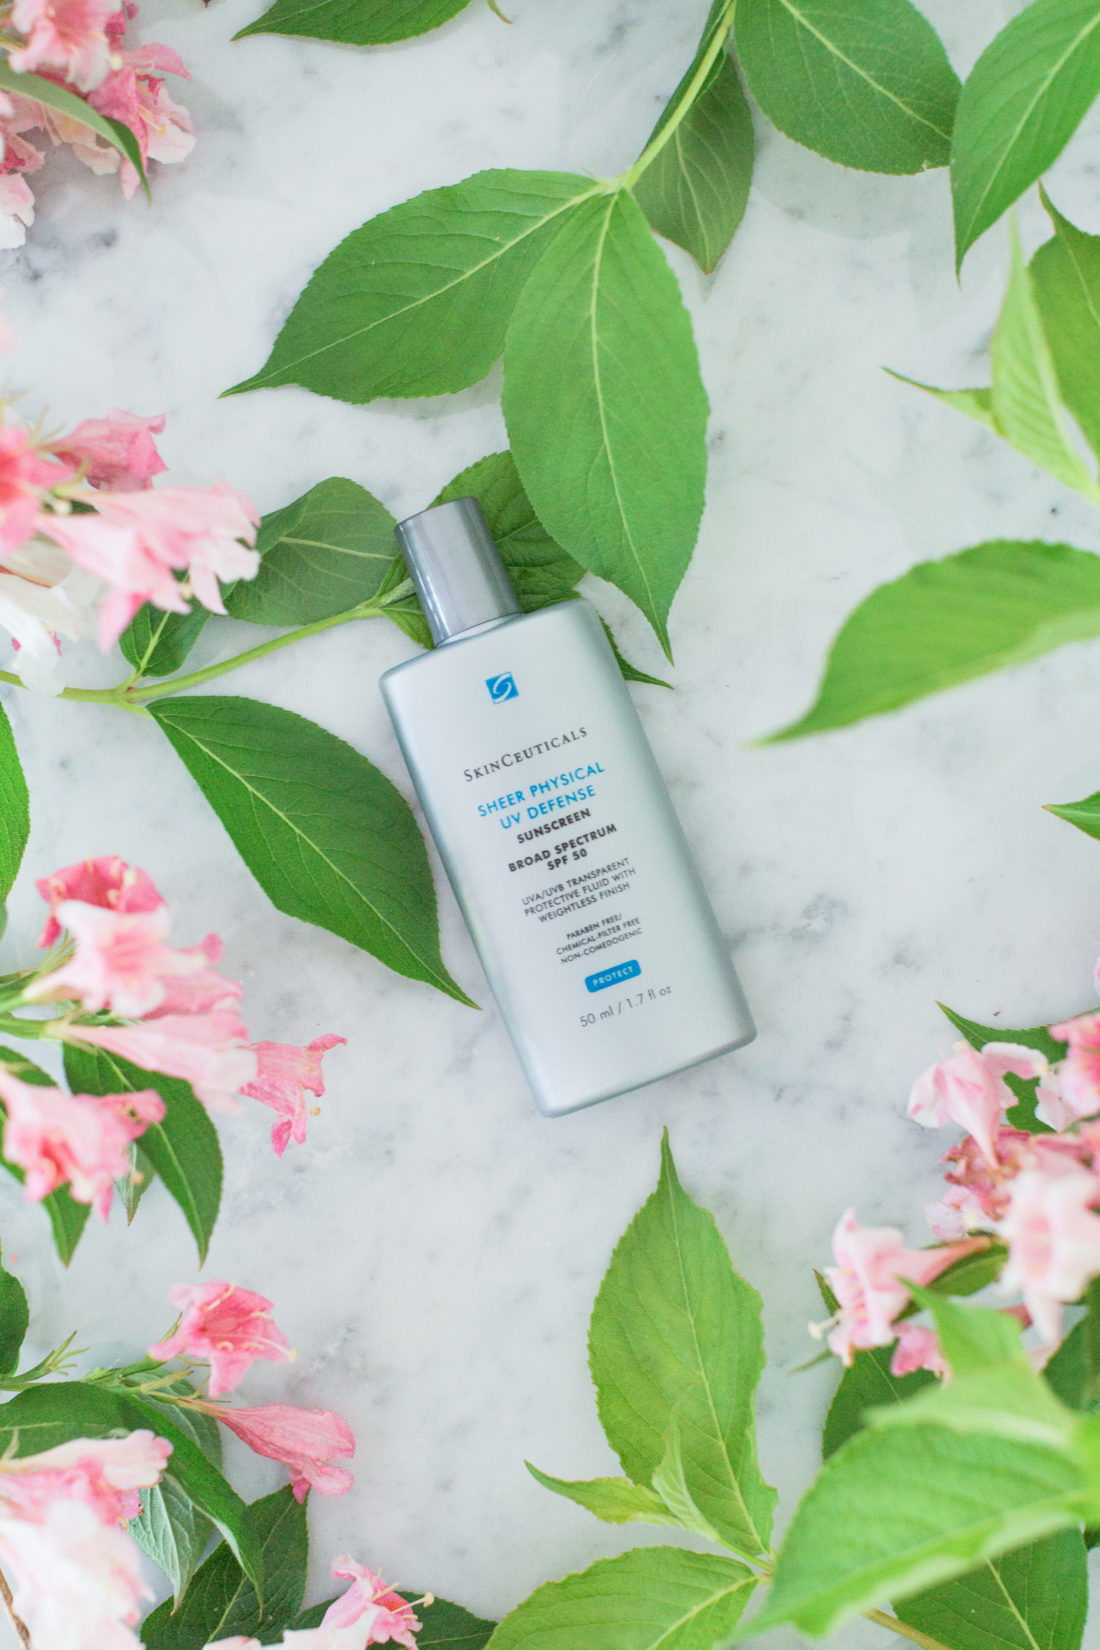 Eva Amurri Martino includes a Skinceuticals UV Defense sunscreen as part of her monthly obsessions roundup